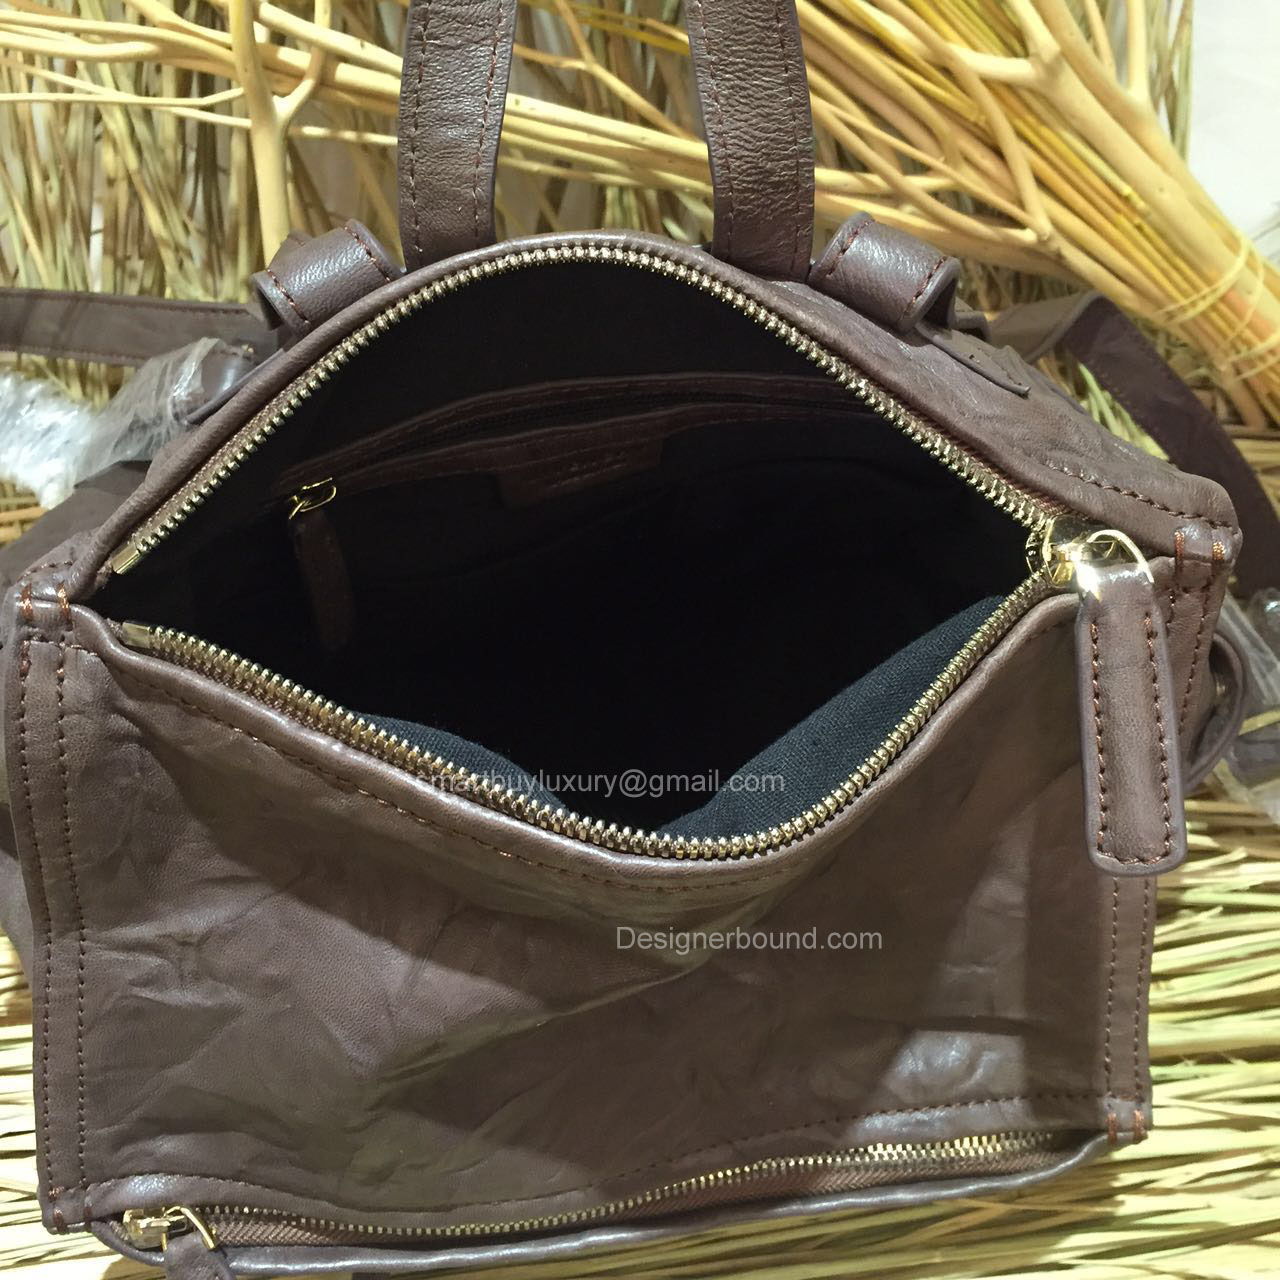 3c4cdec03ff9 GIVENCHY PANDORA WRINKLED LAMBSKIN BACKPACK COFFEE 286135  299.00